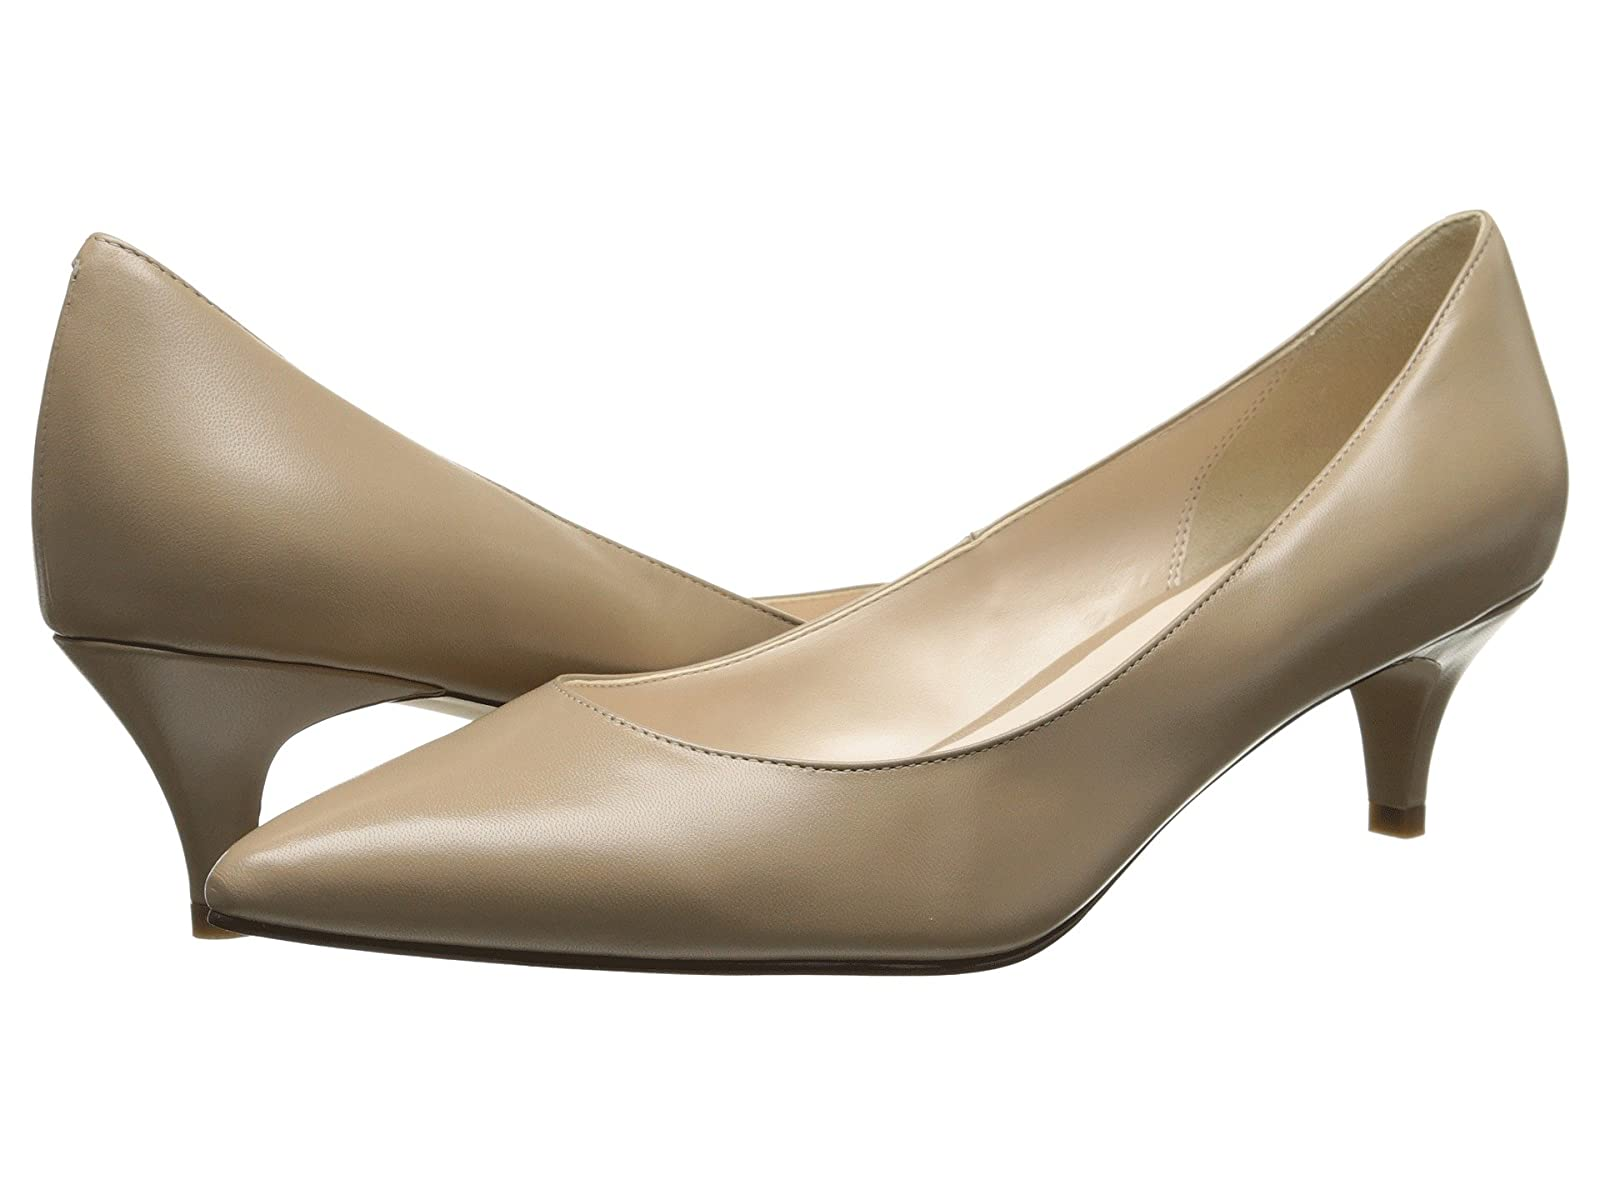 Cole Haan Juliana Pump 45mmCheap and distinctive eye-catching shoes